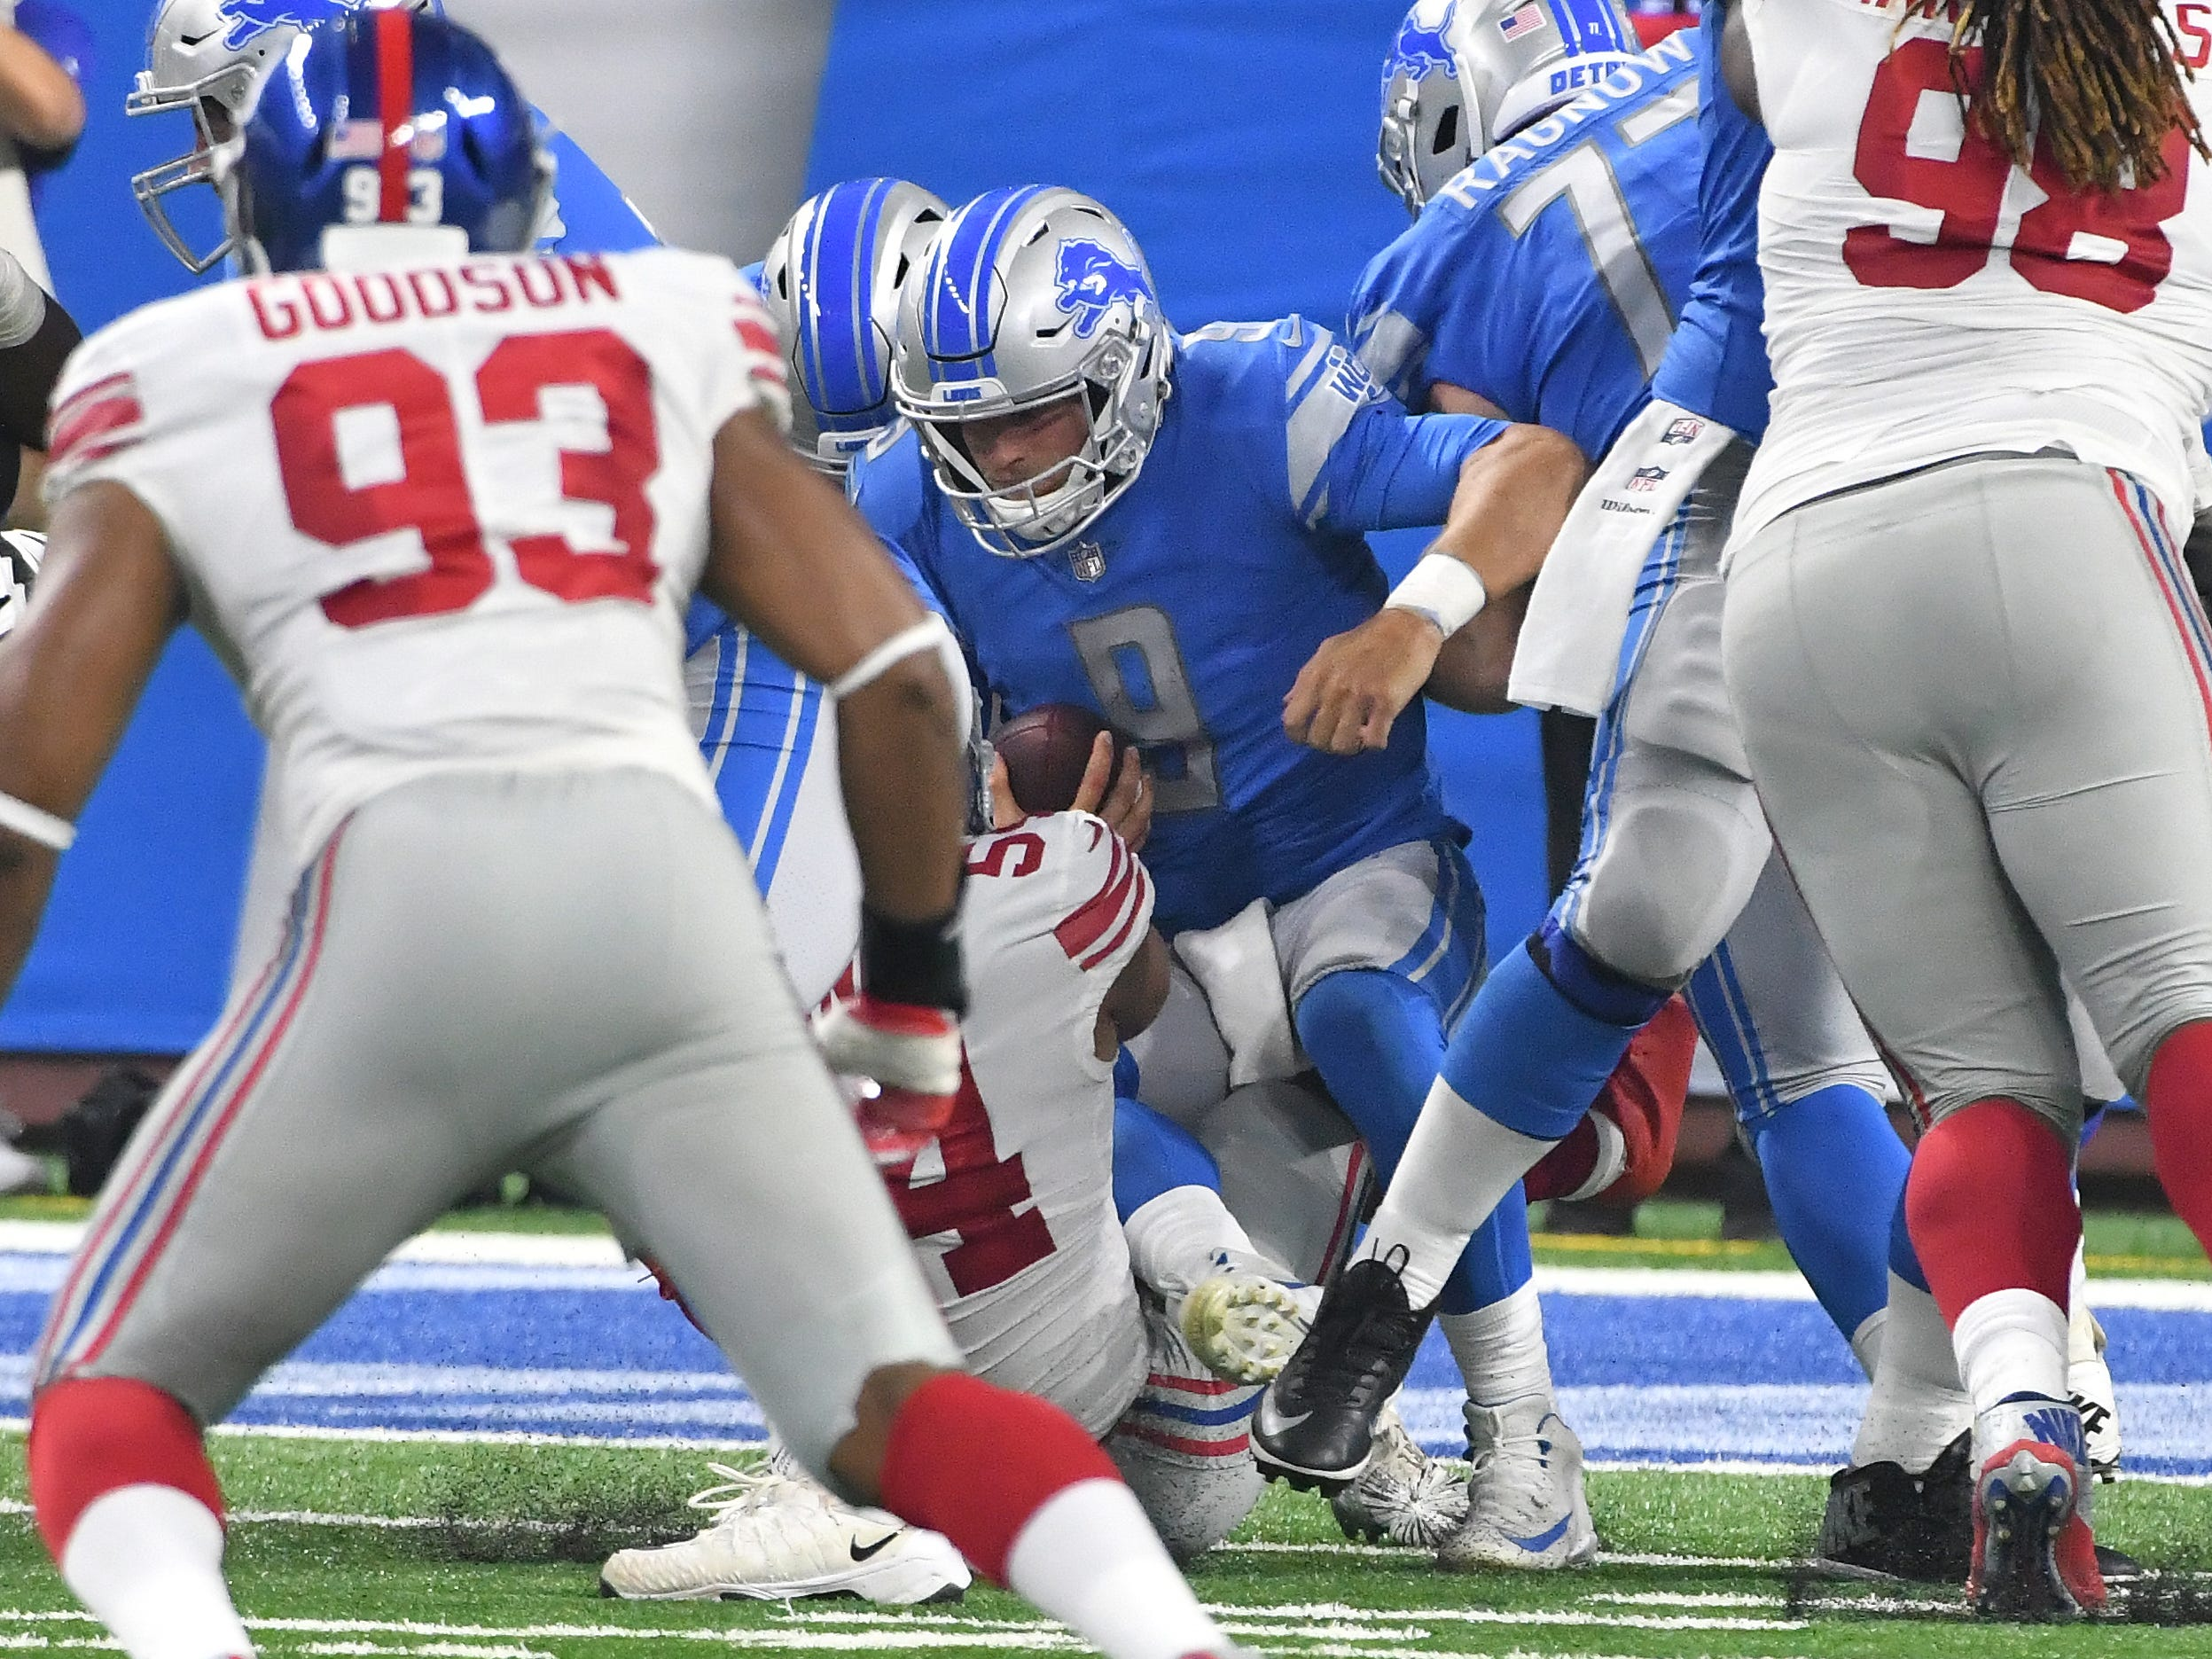 Lions quarterback Matthew Stafford is sacked for the second time in the first half.